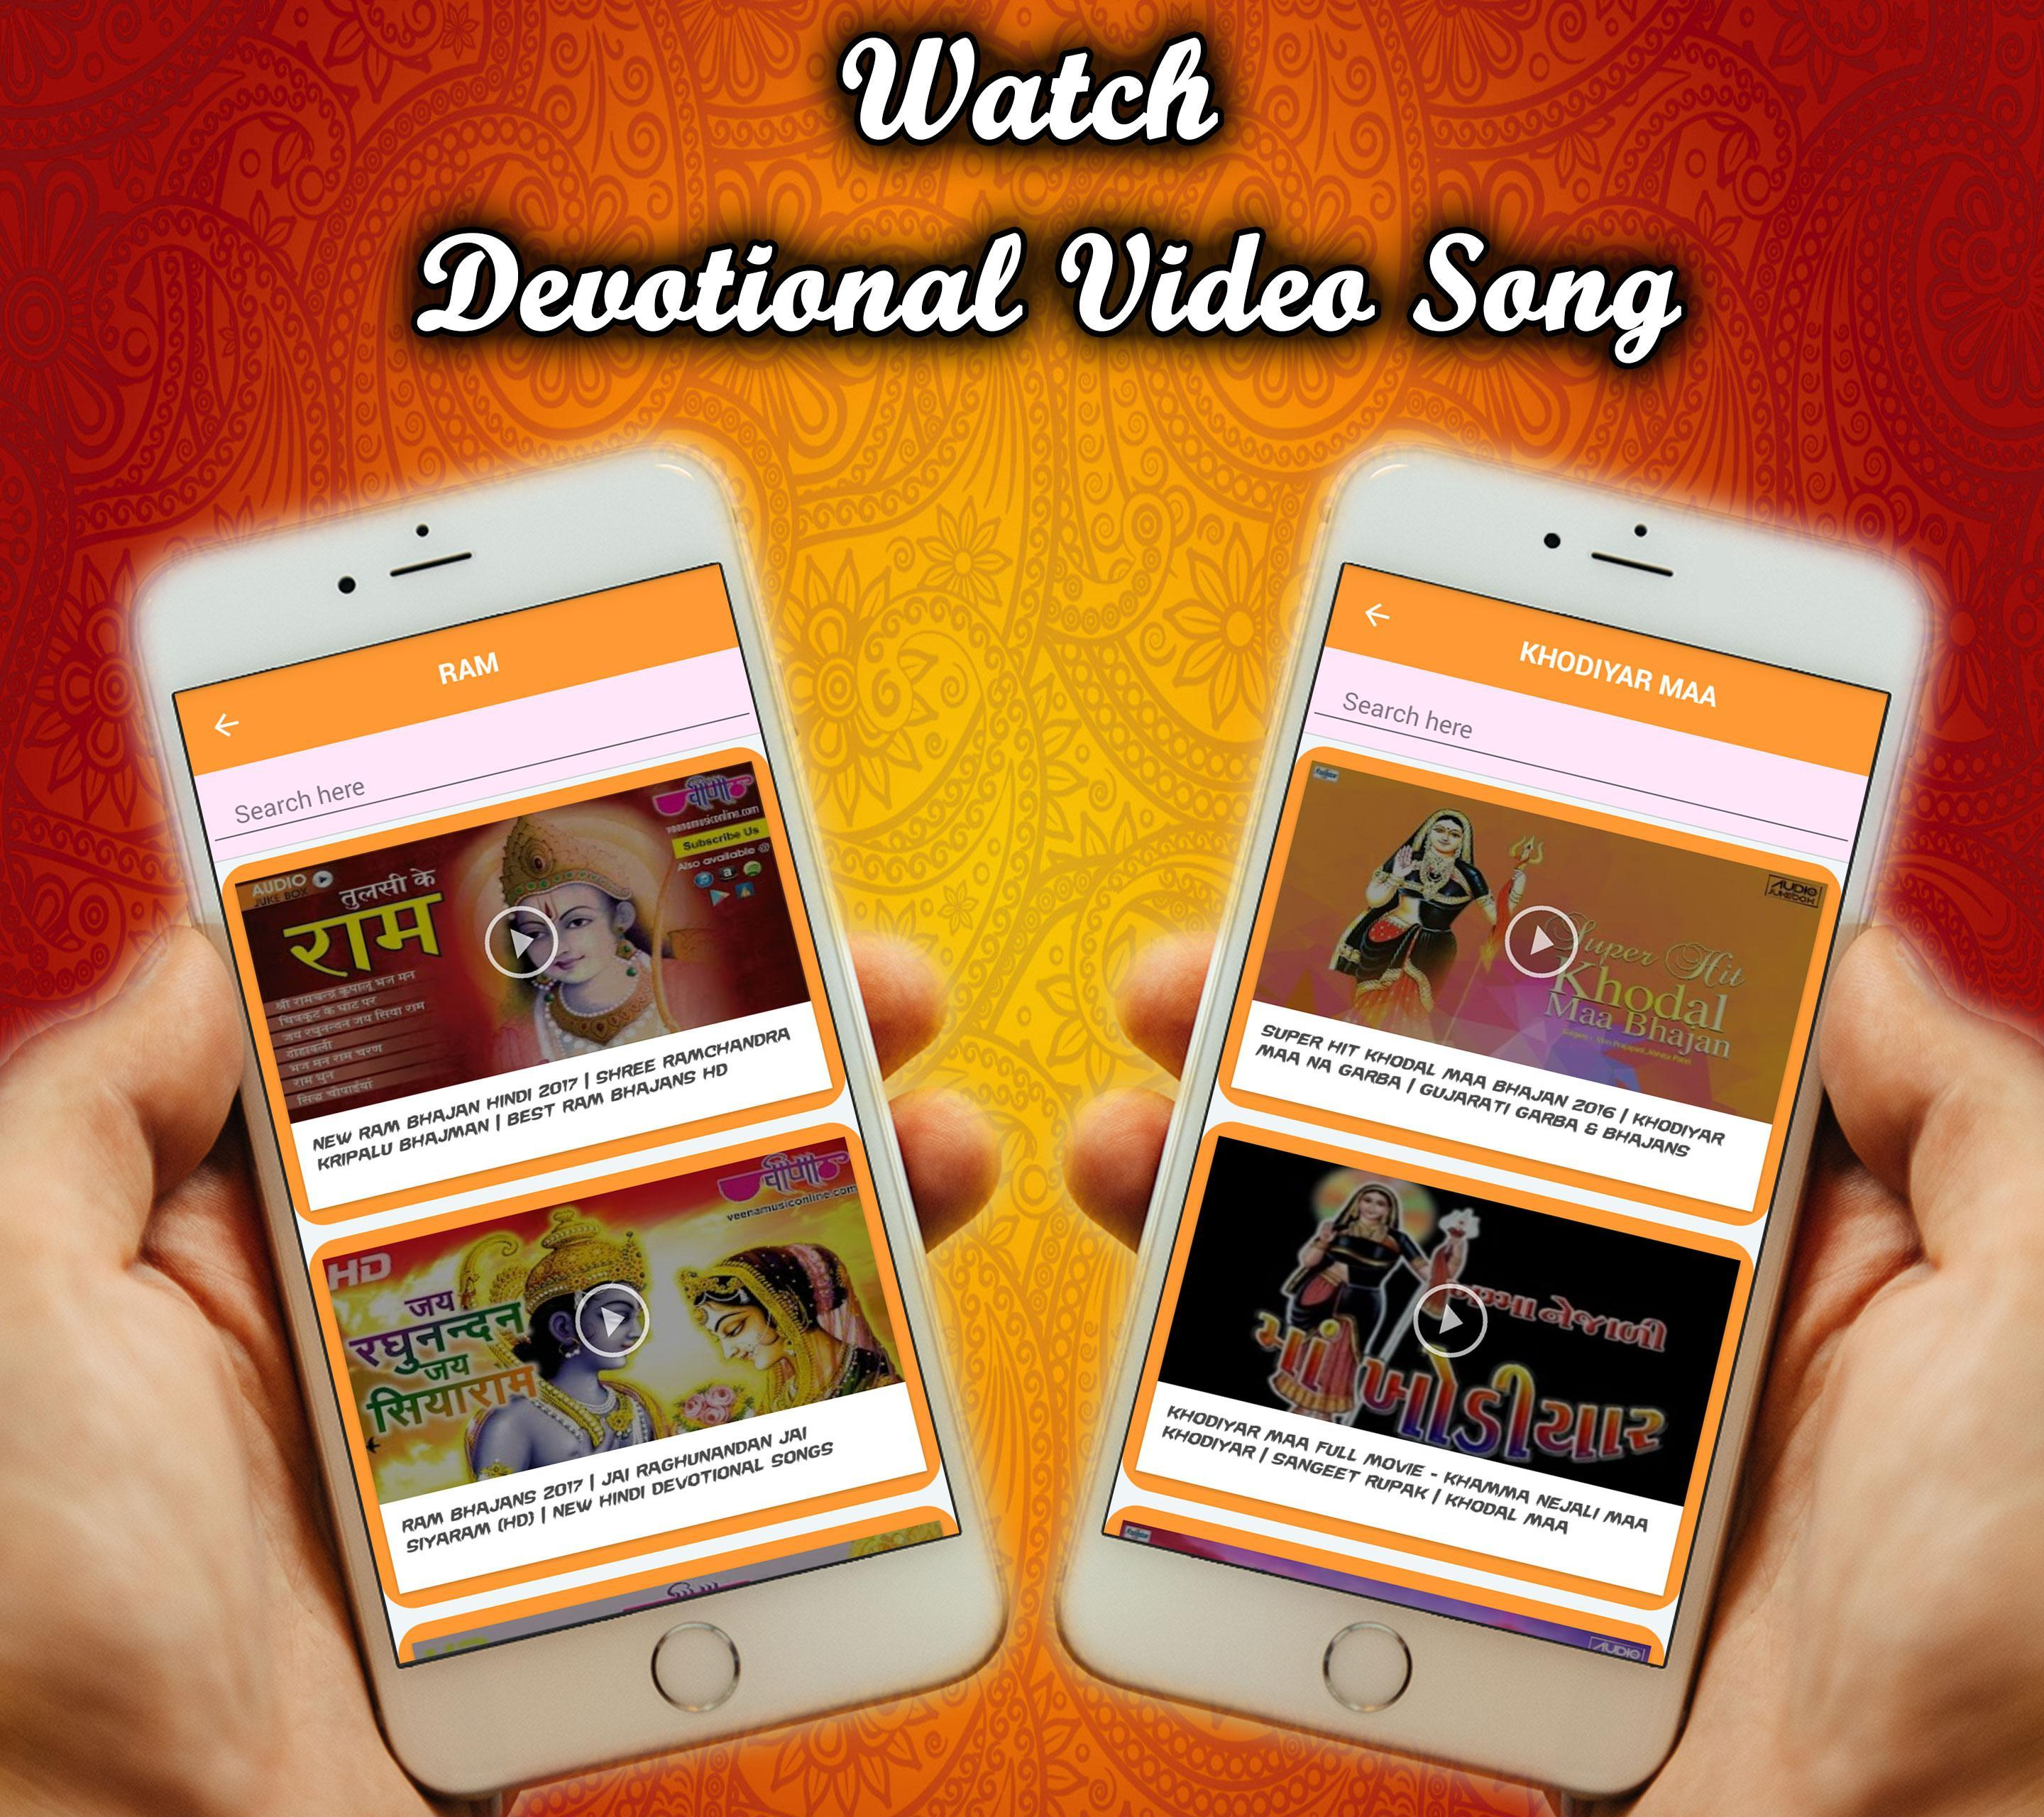 A-Z Devotional Songs - Hindu,Islam,Christian for Android